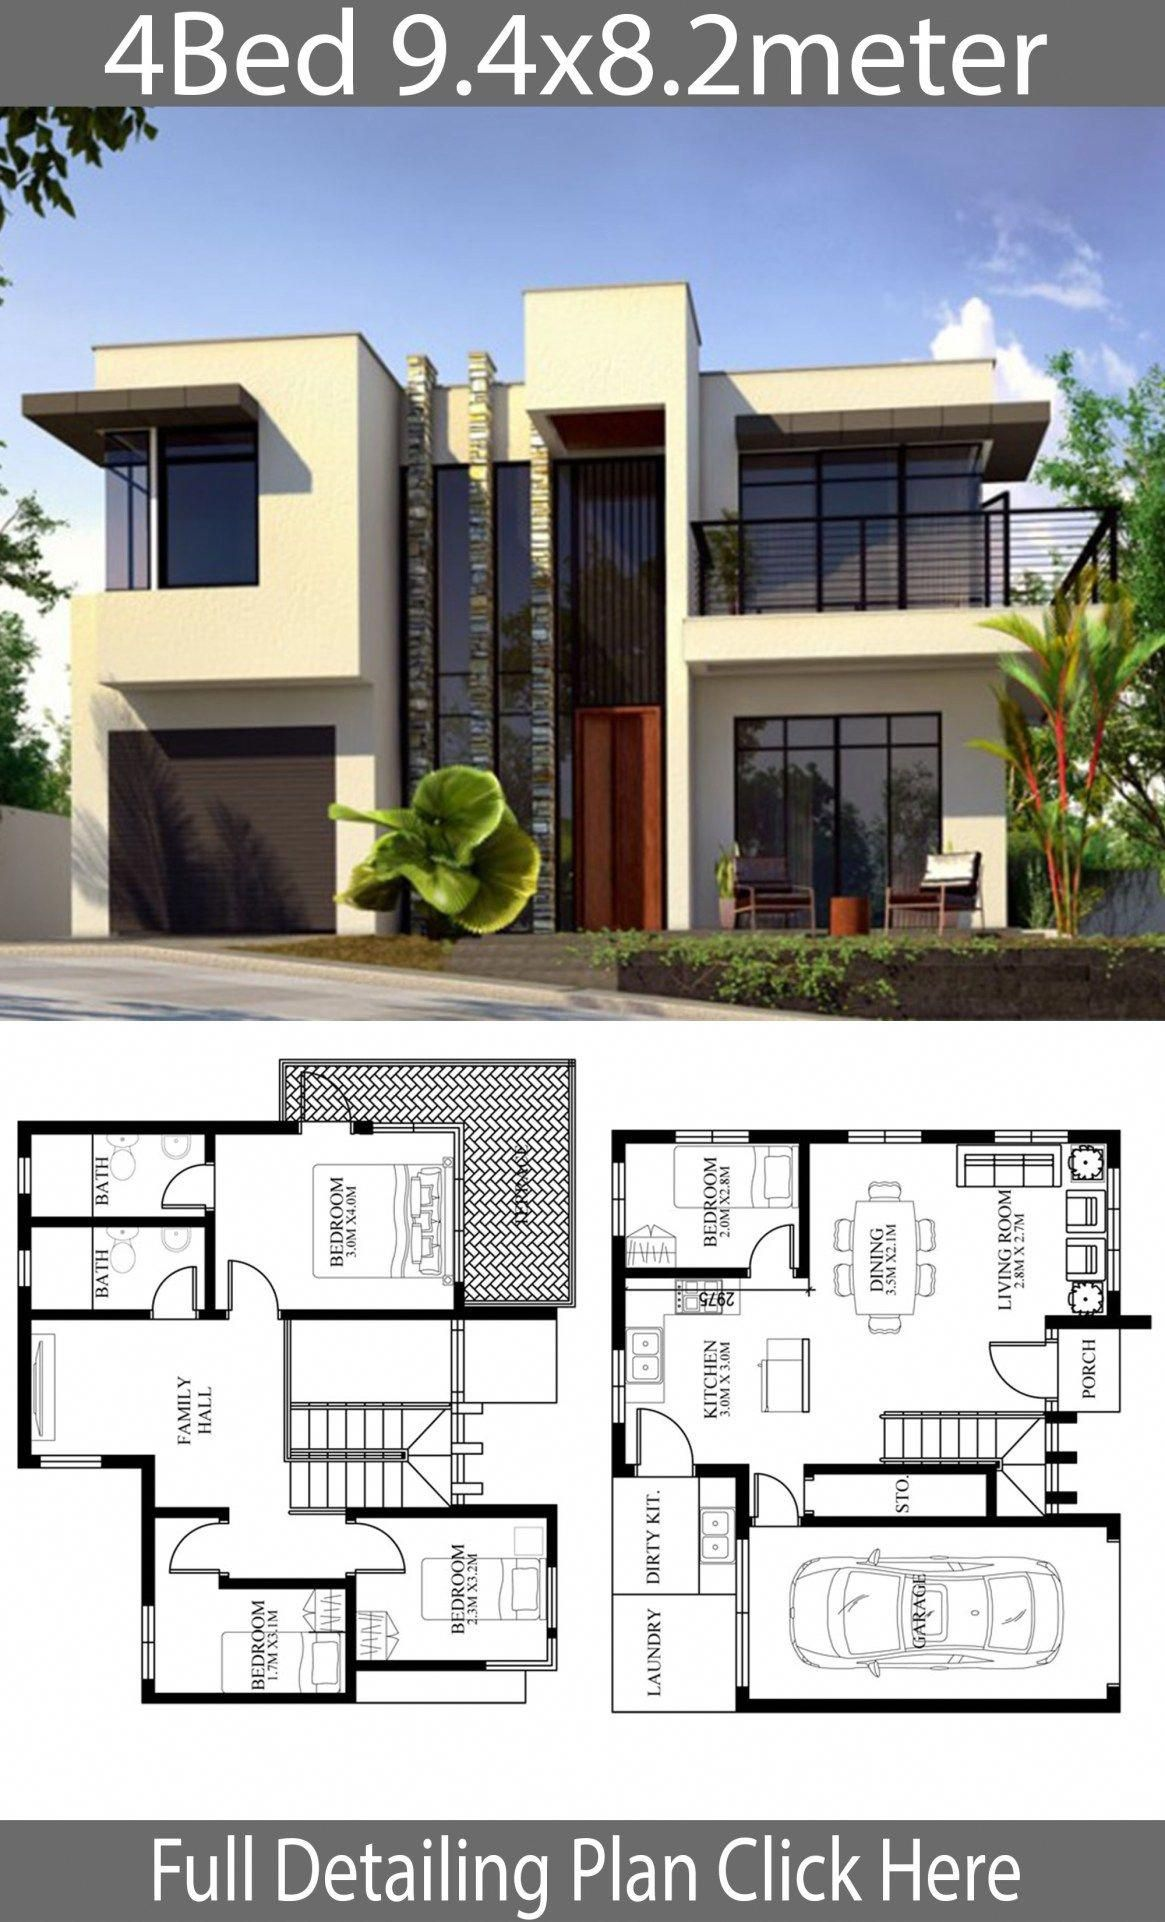 Small Home Design Plan 9 4x8 2m With 4 Bedrooms Home Design With Plansearch Modernhomeinteriors Model House Plan 2 Storey House Design Duplex House Design